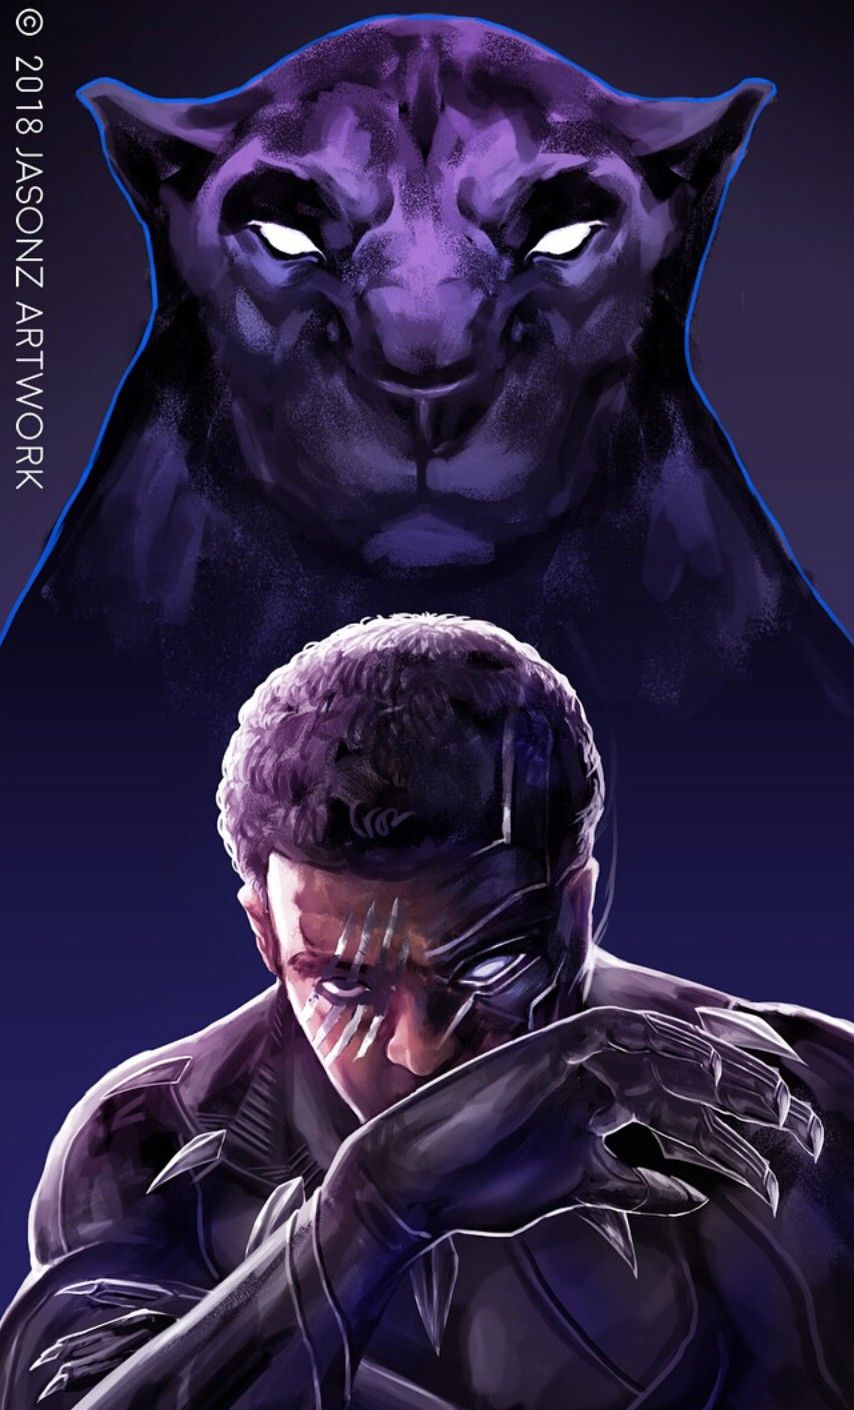 Black Panther, T'Challa | MARVEL | Black panther marvel, Panther, Black panther